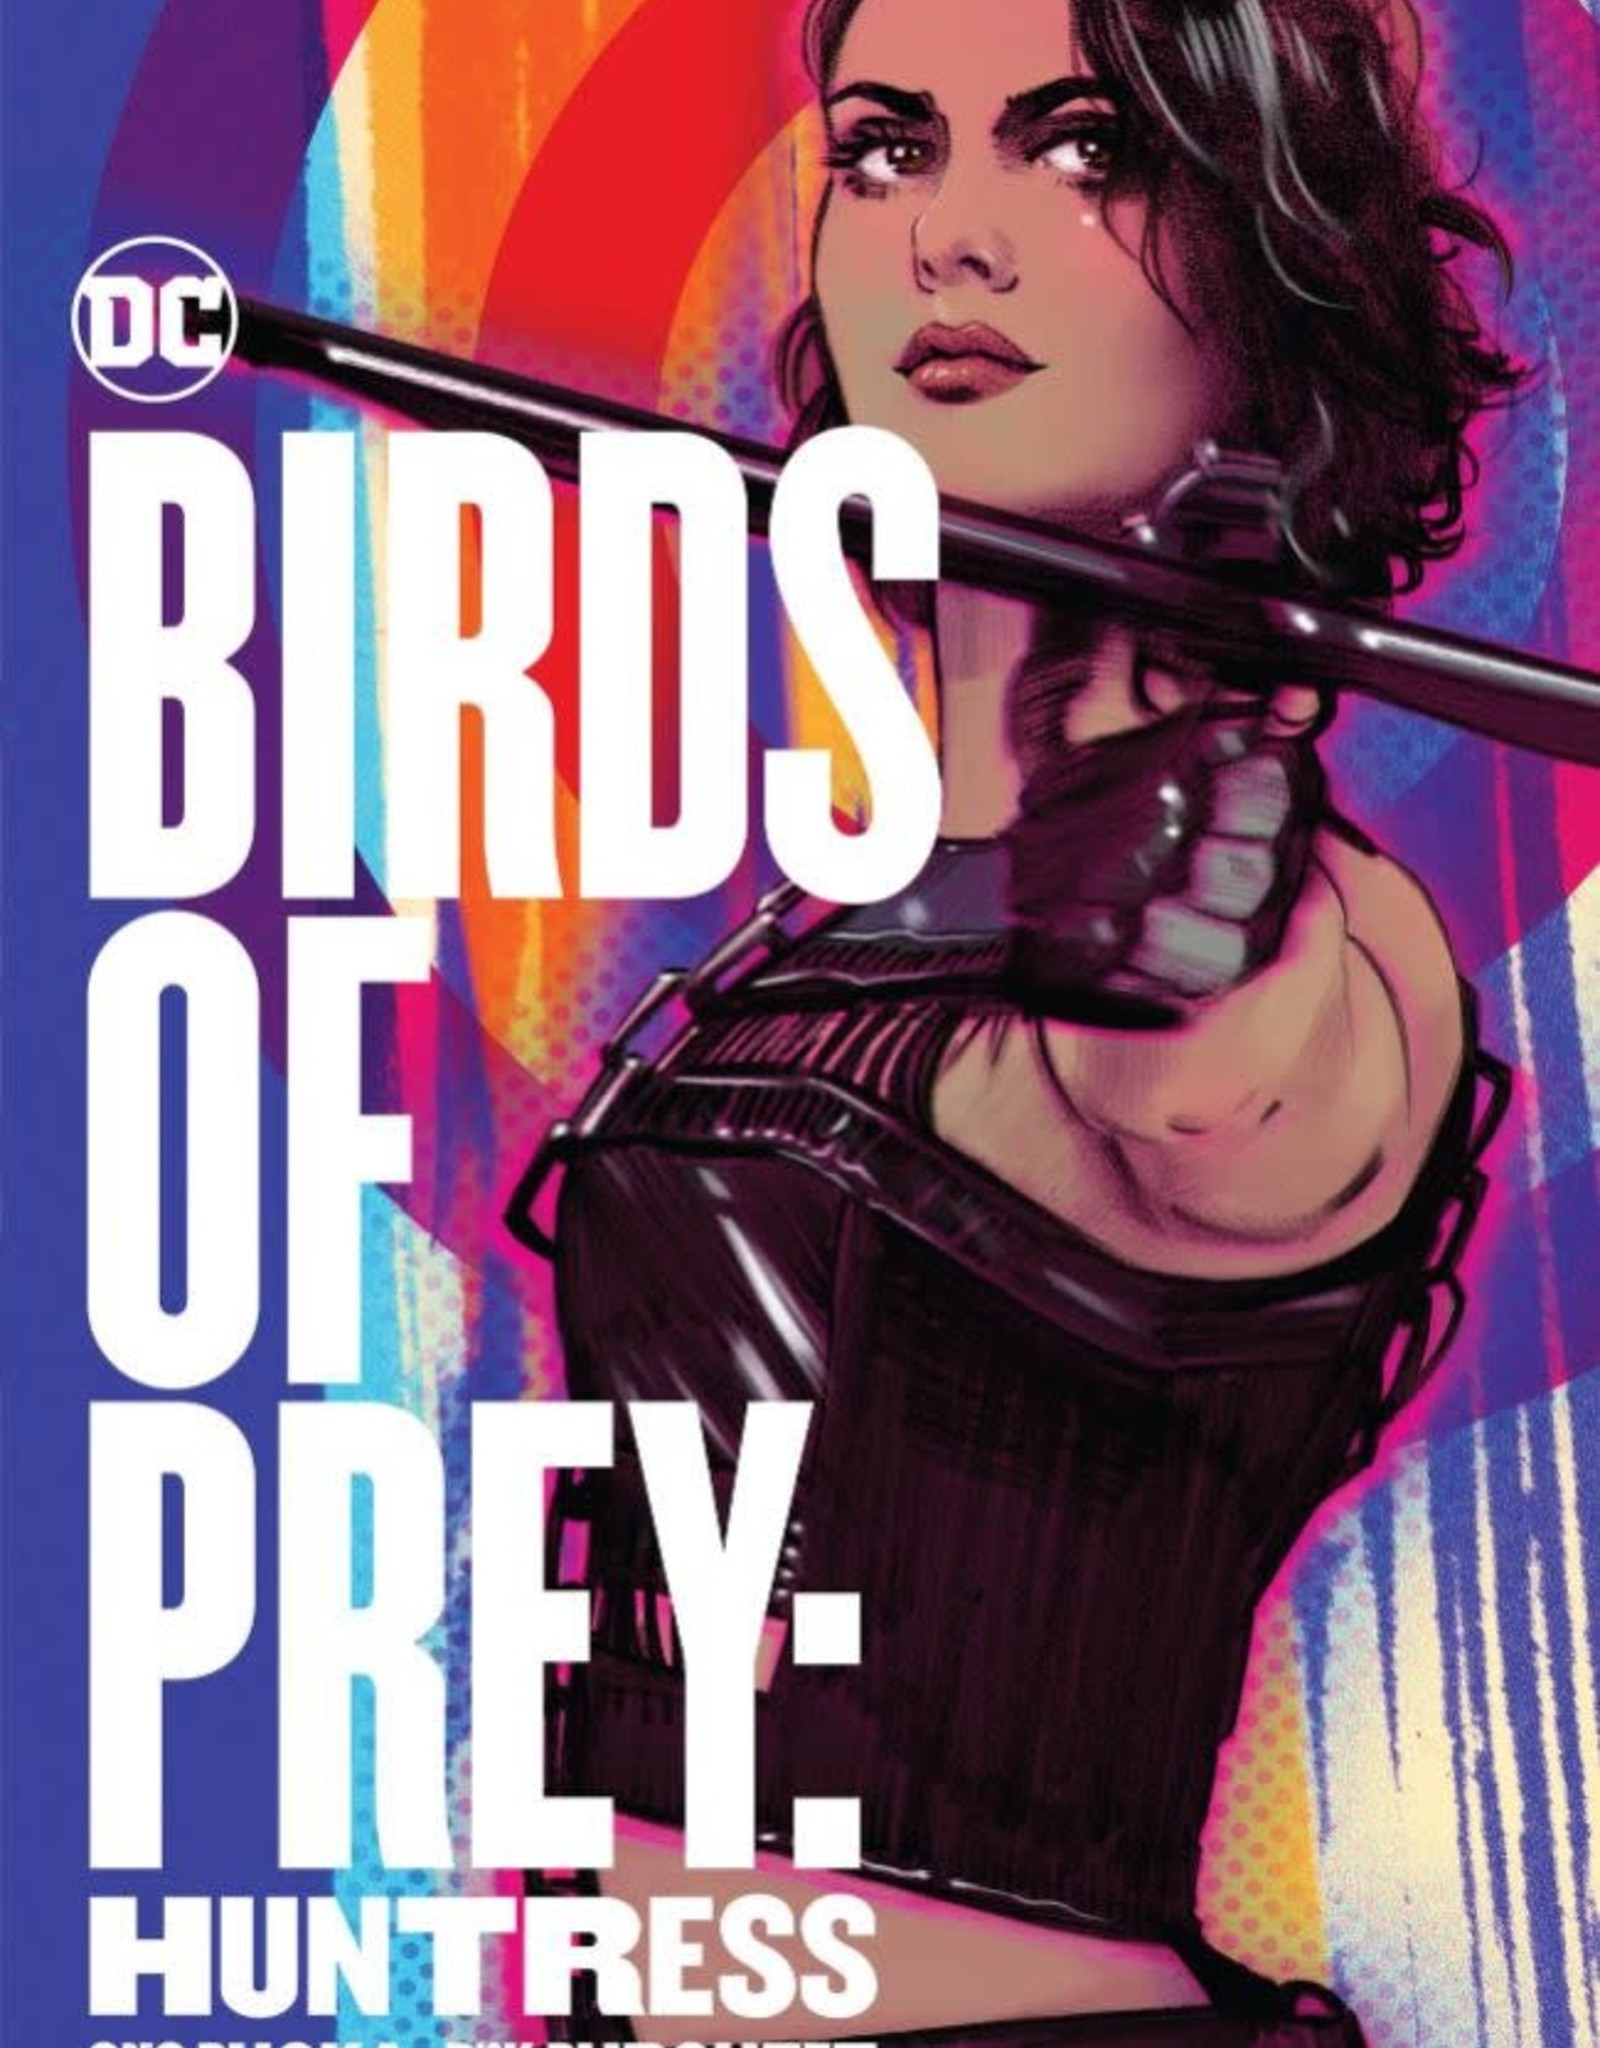 DC Comics Birds of Prey Huntress